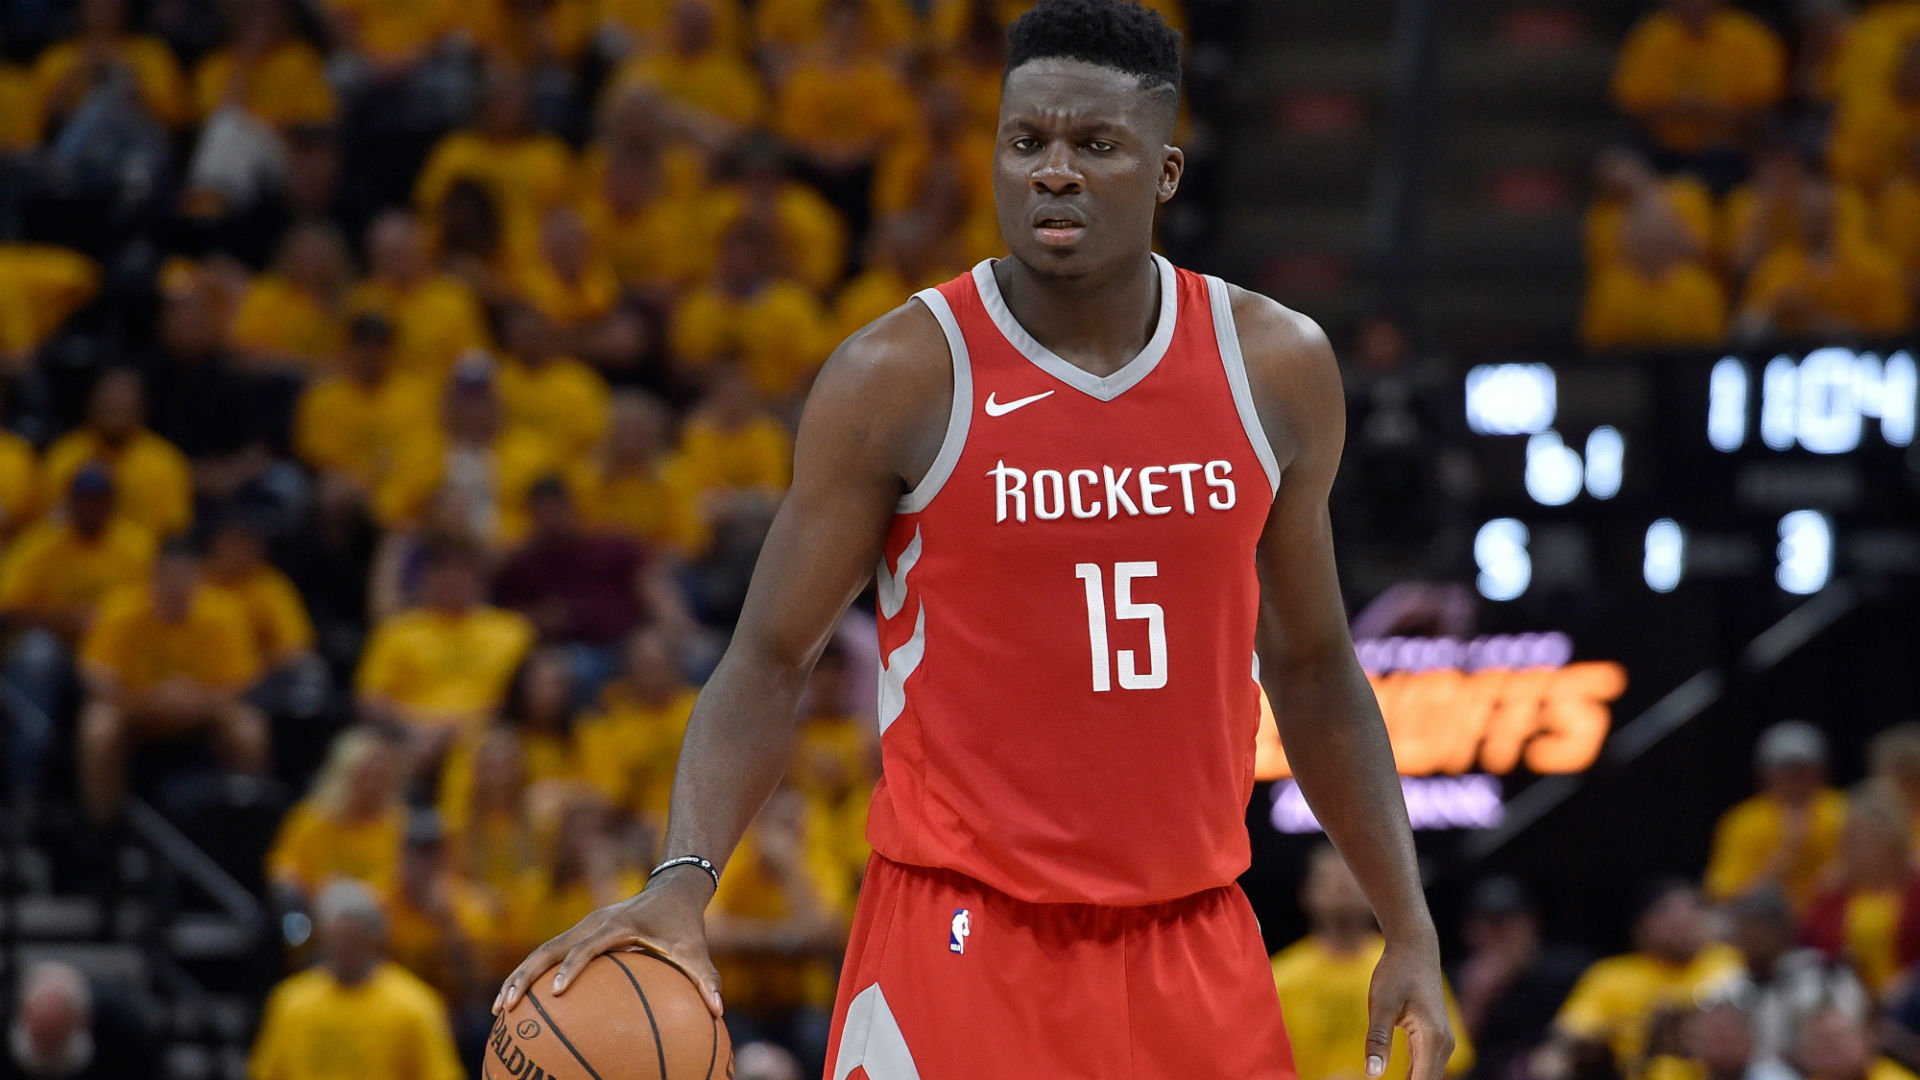 NBA free agency rumors: Clint Capela unhappy about contract negotiations with Rockets